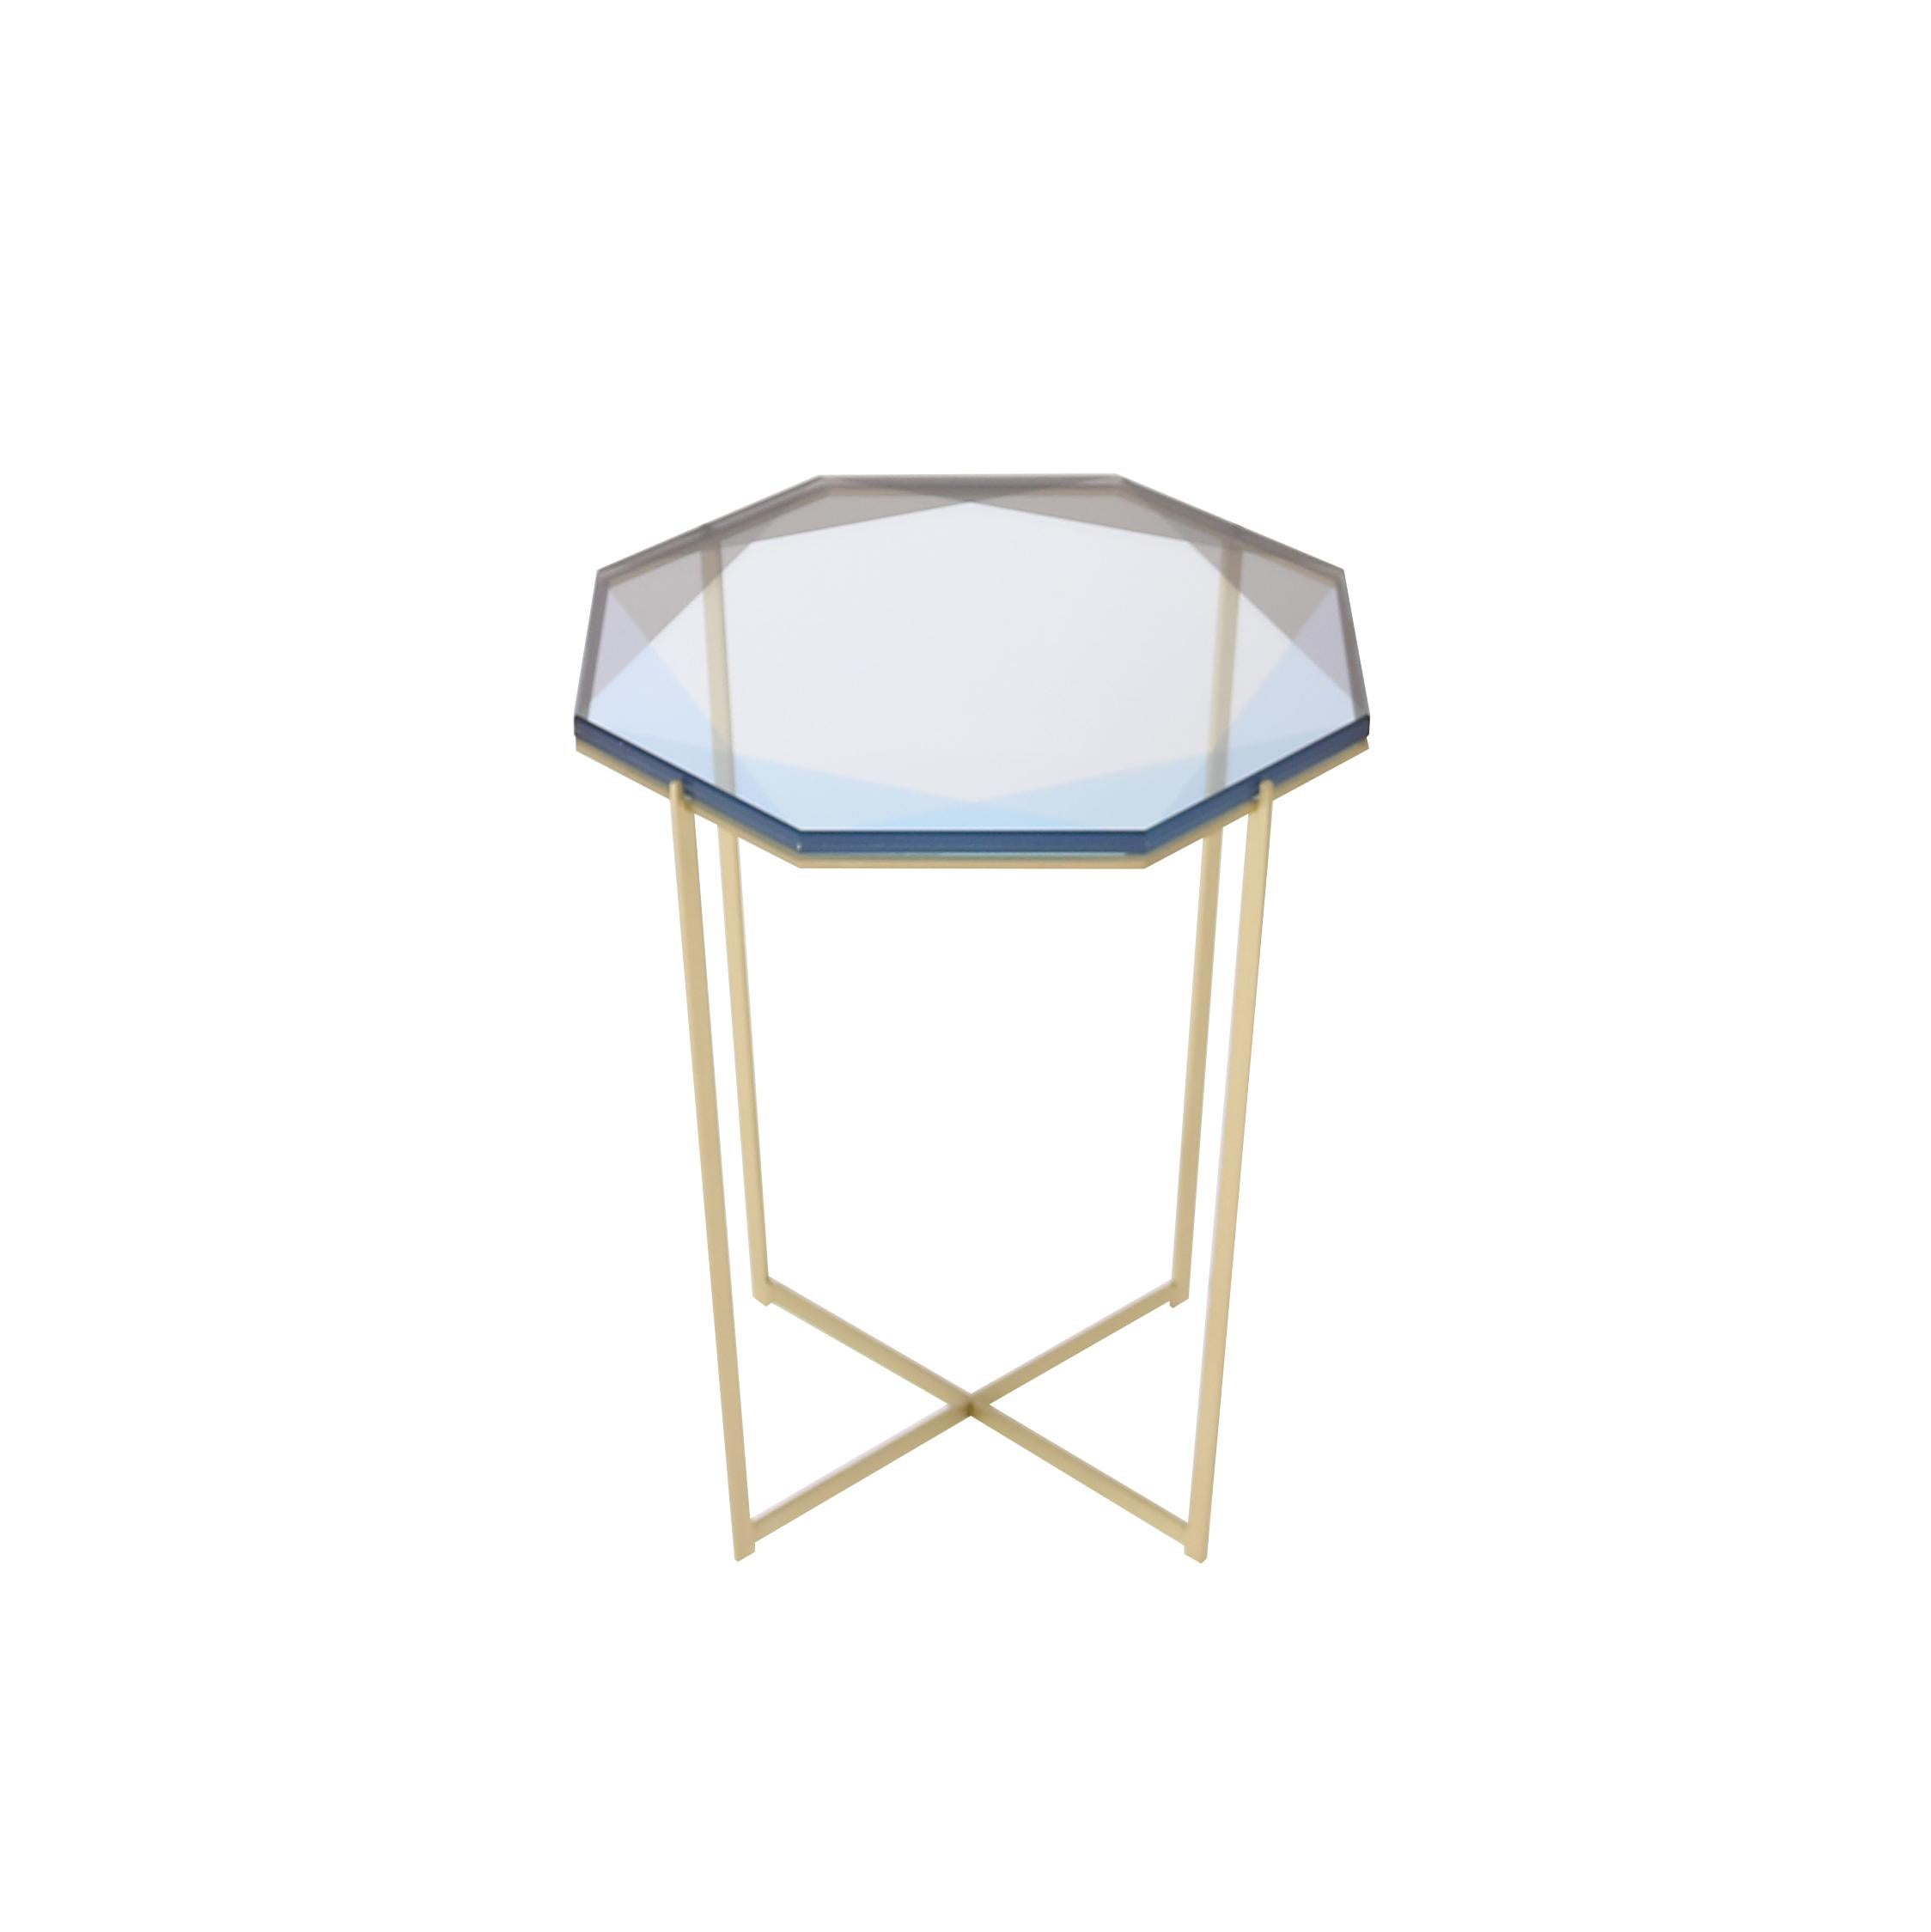 Gem Side Table with Blue Glass and Brass base by Debra Folz